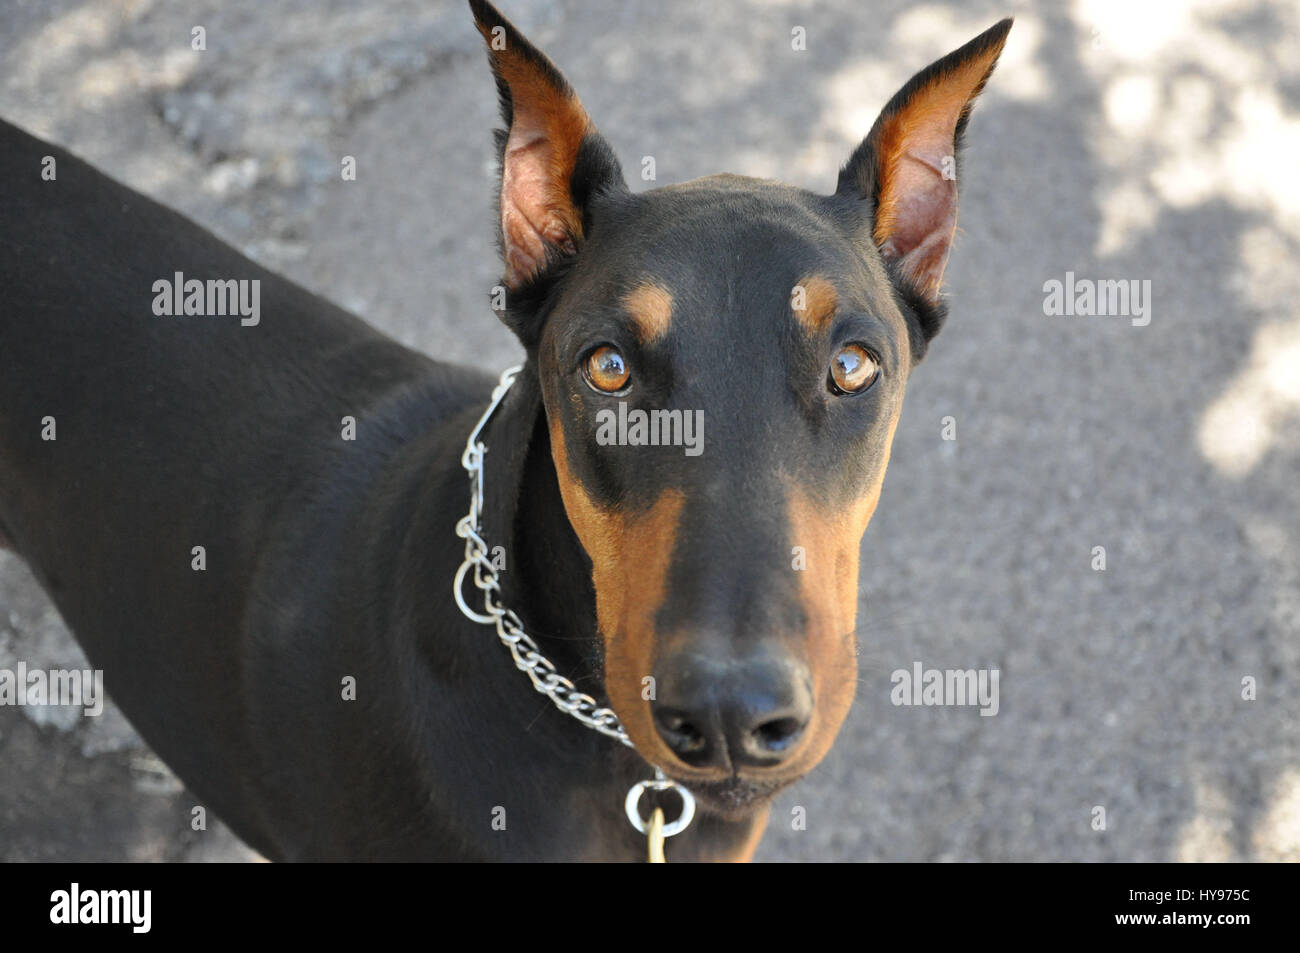 Cute face of a doberman pinscher dog. - Stock Image